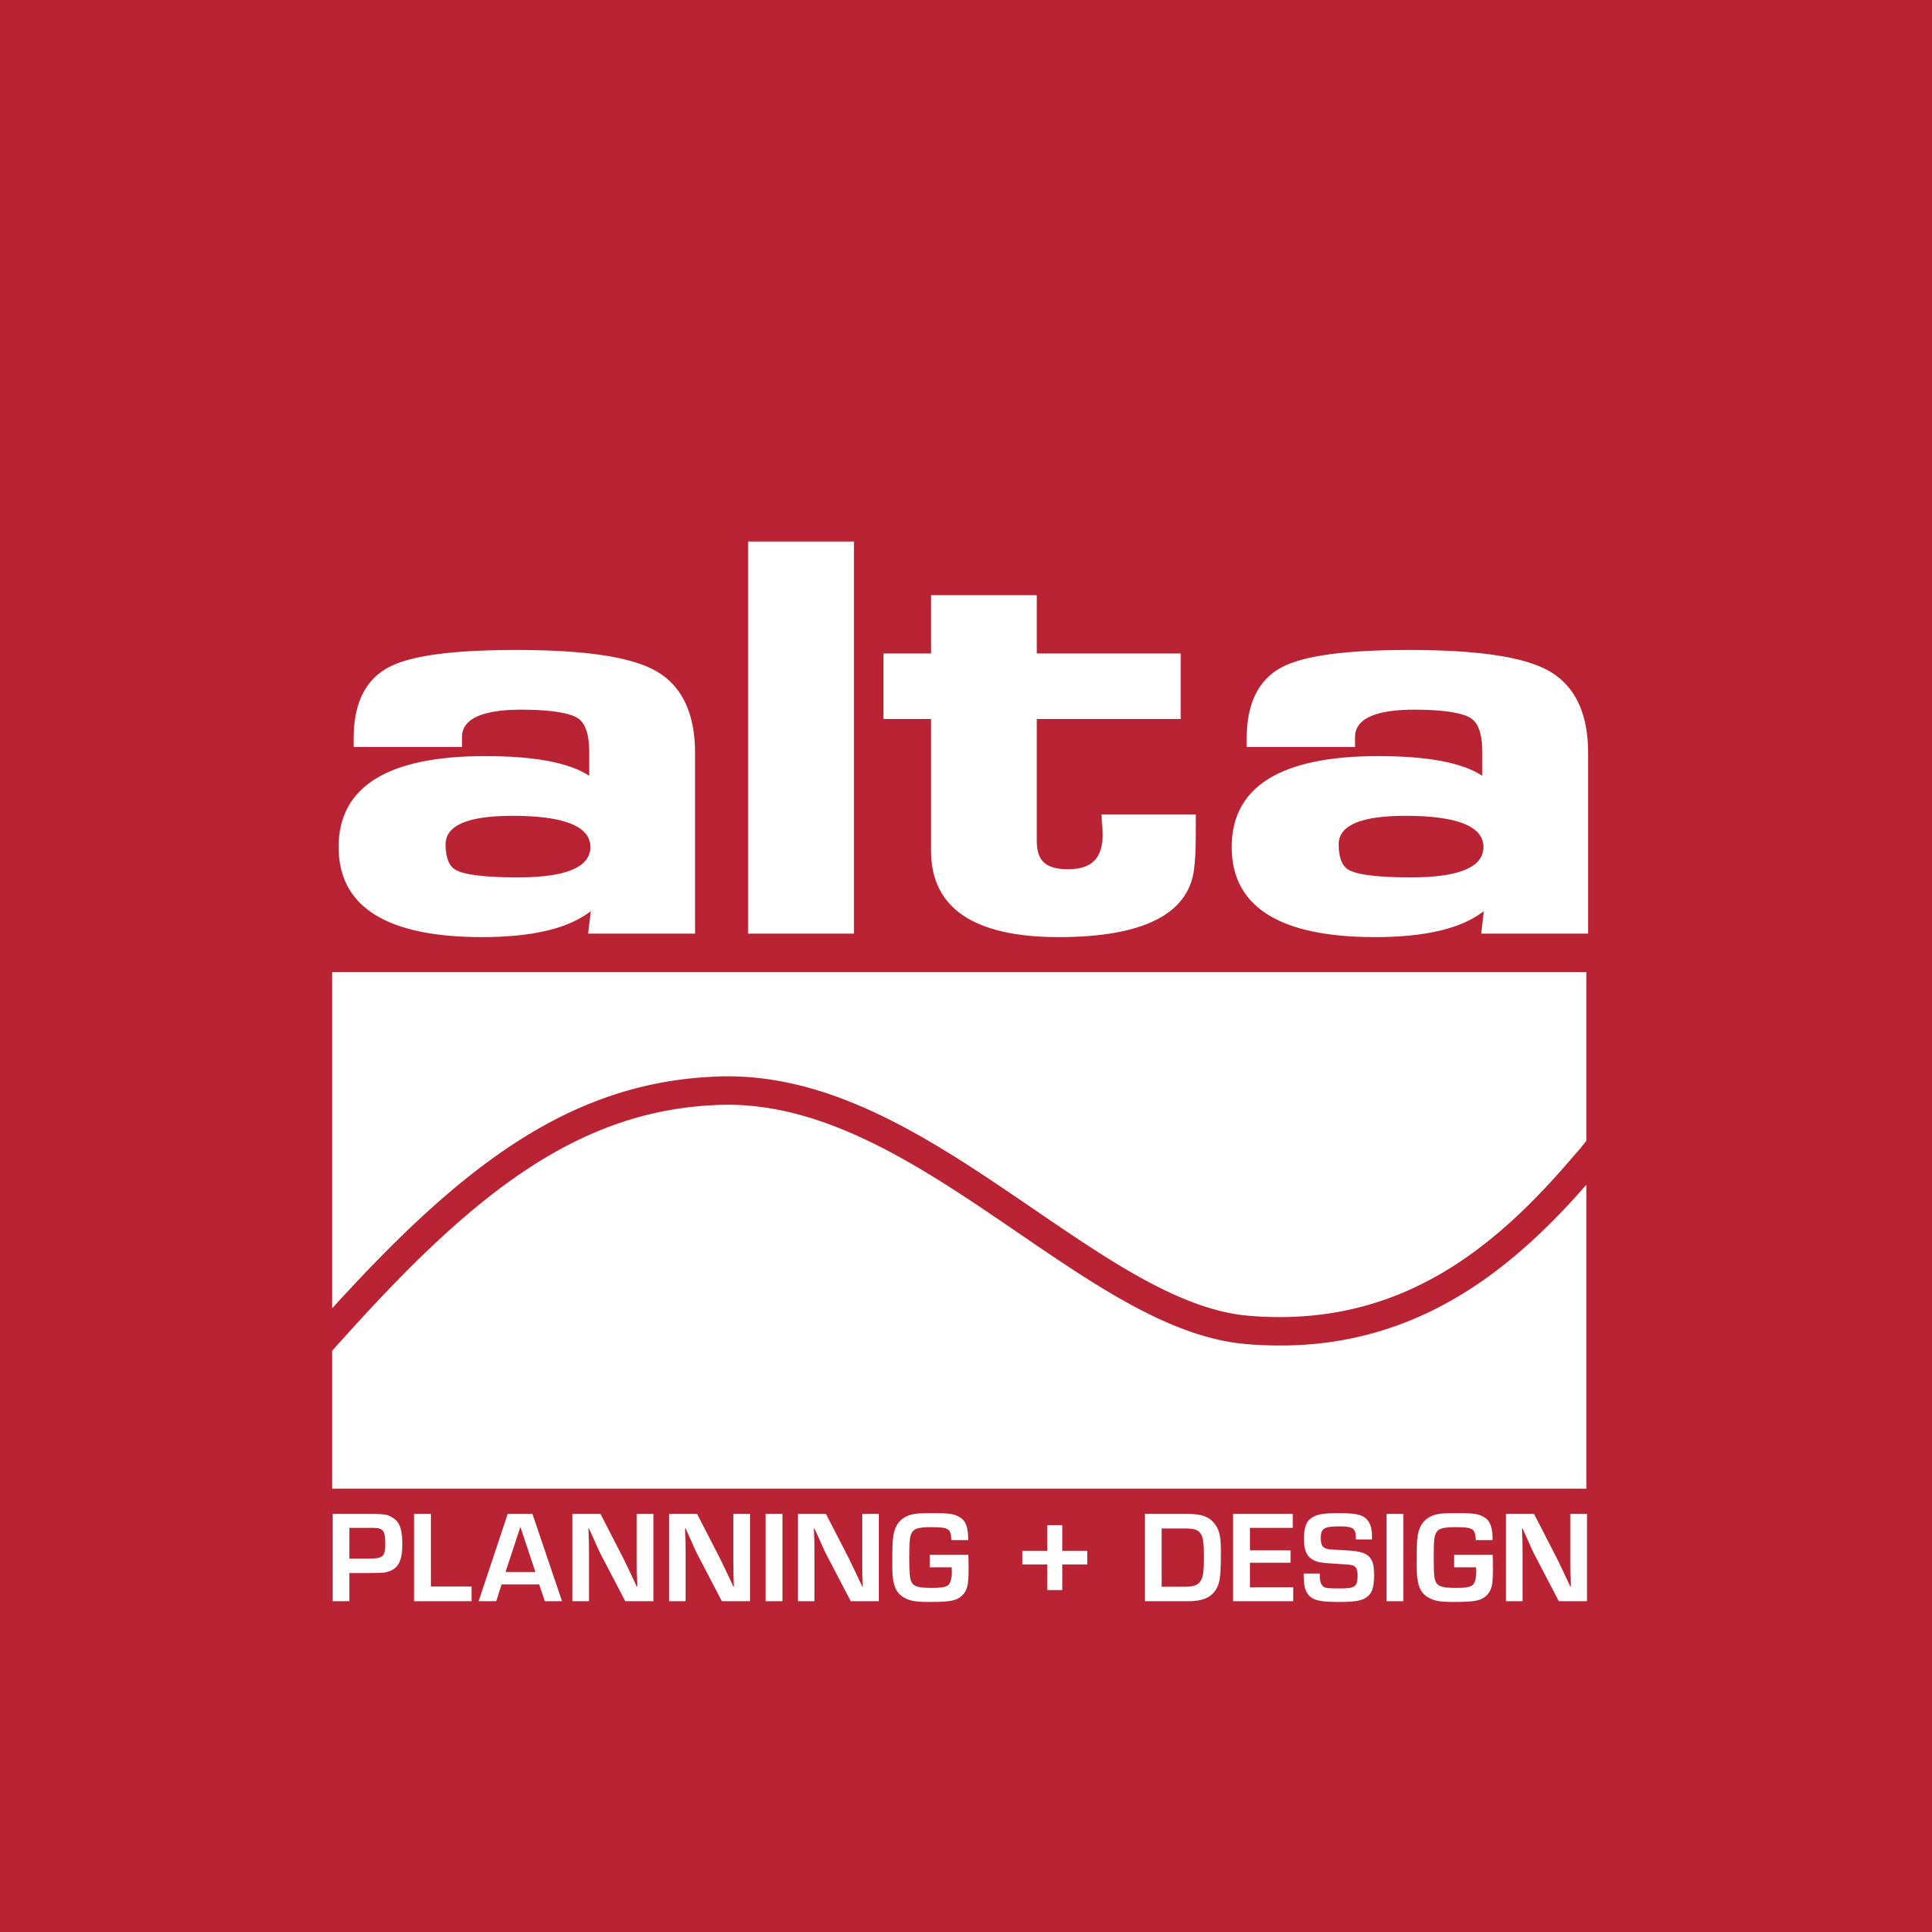 Alta_Logo_white_on_red.jpg